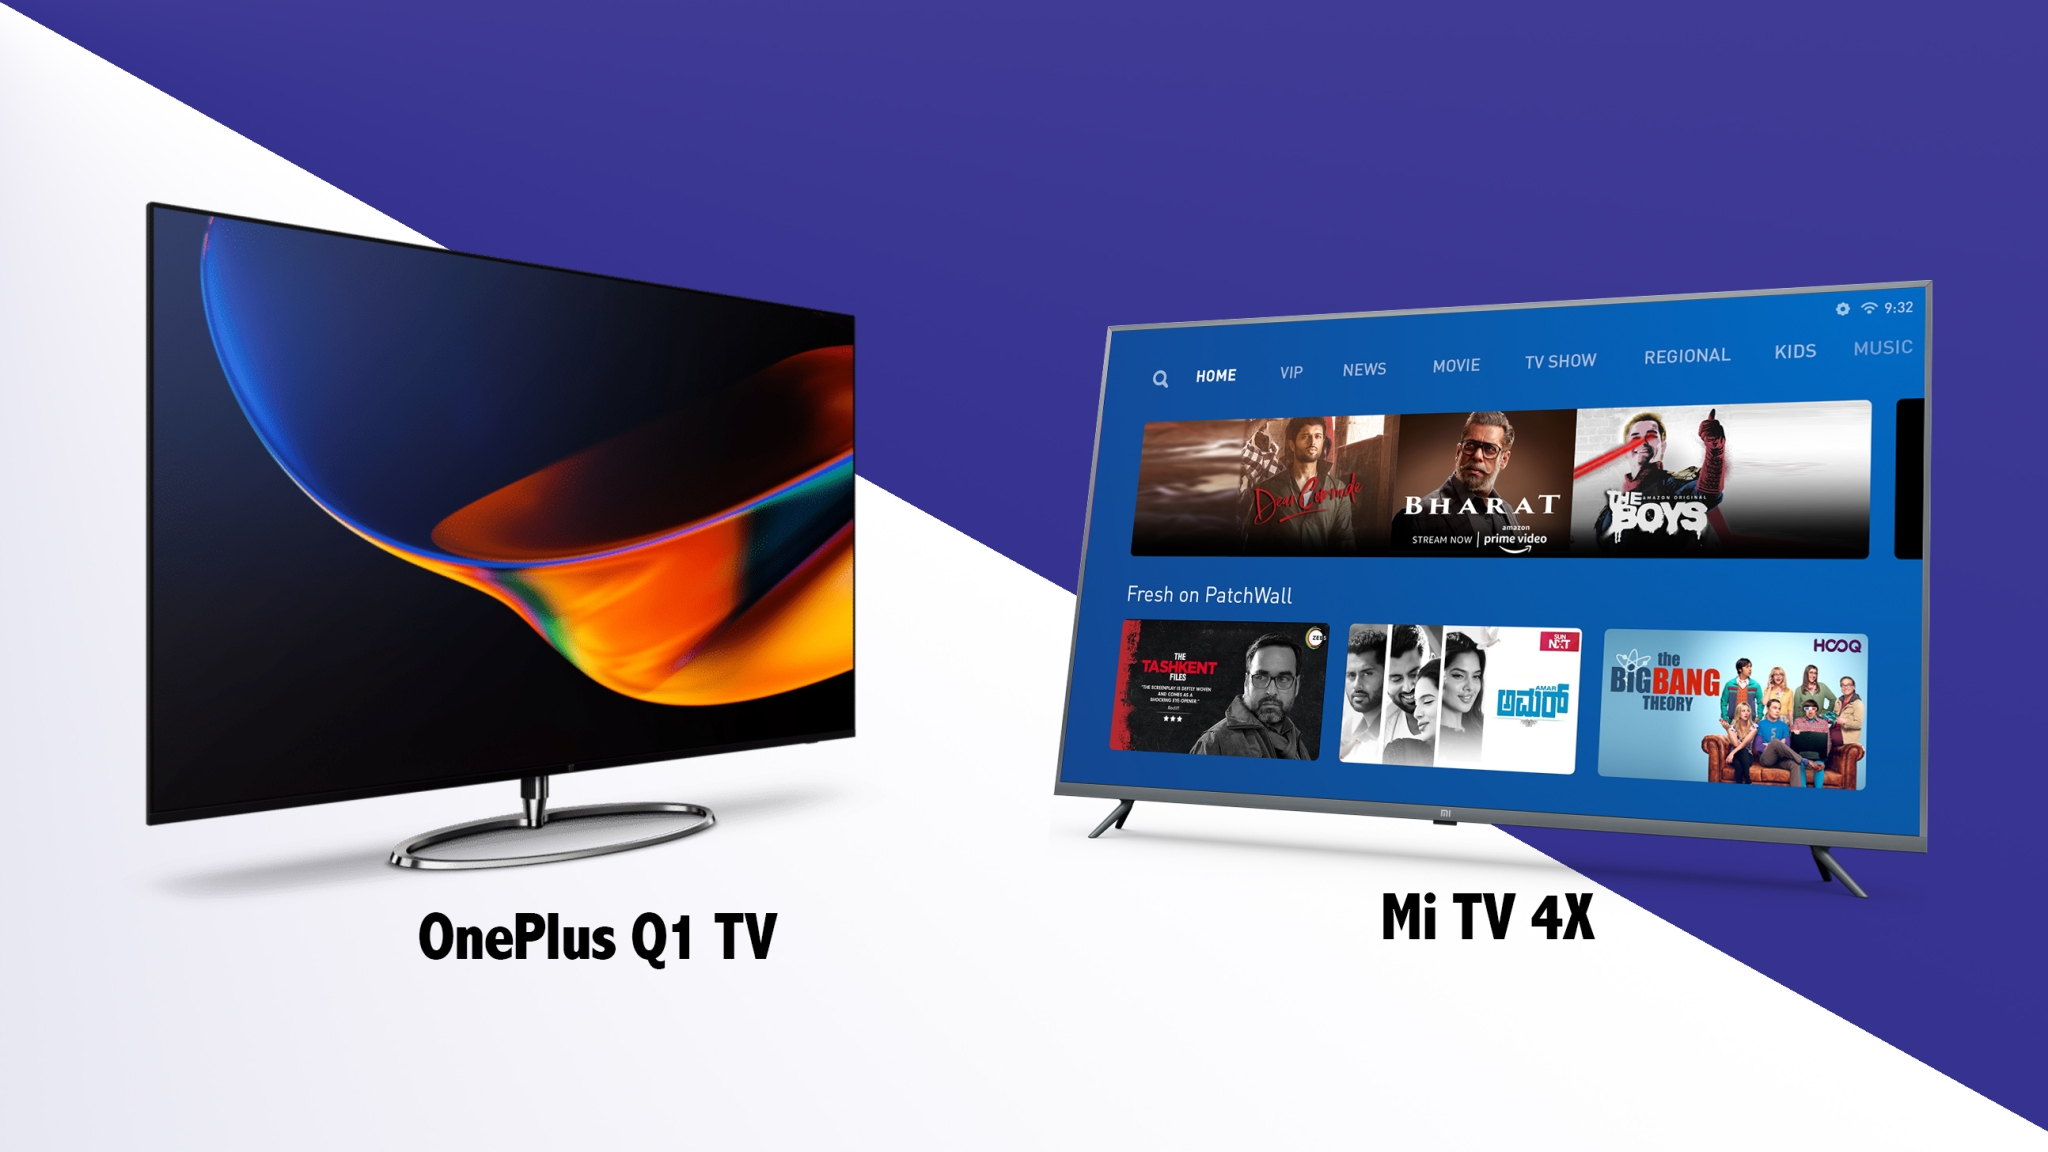 OnePlus Q1 TV vs Mi TV 4X: Which Smart TV Offers Better Value?